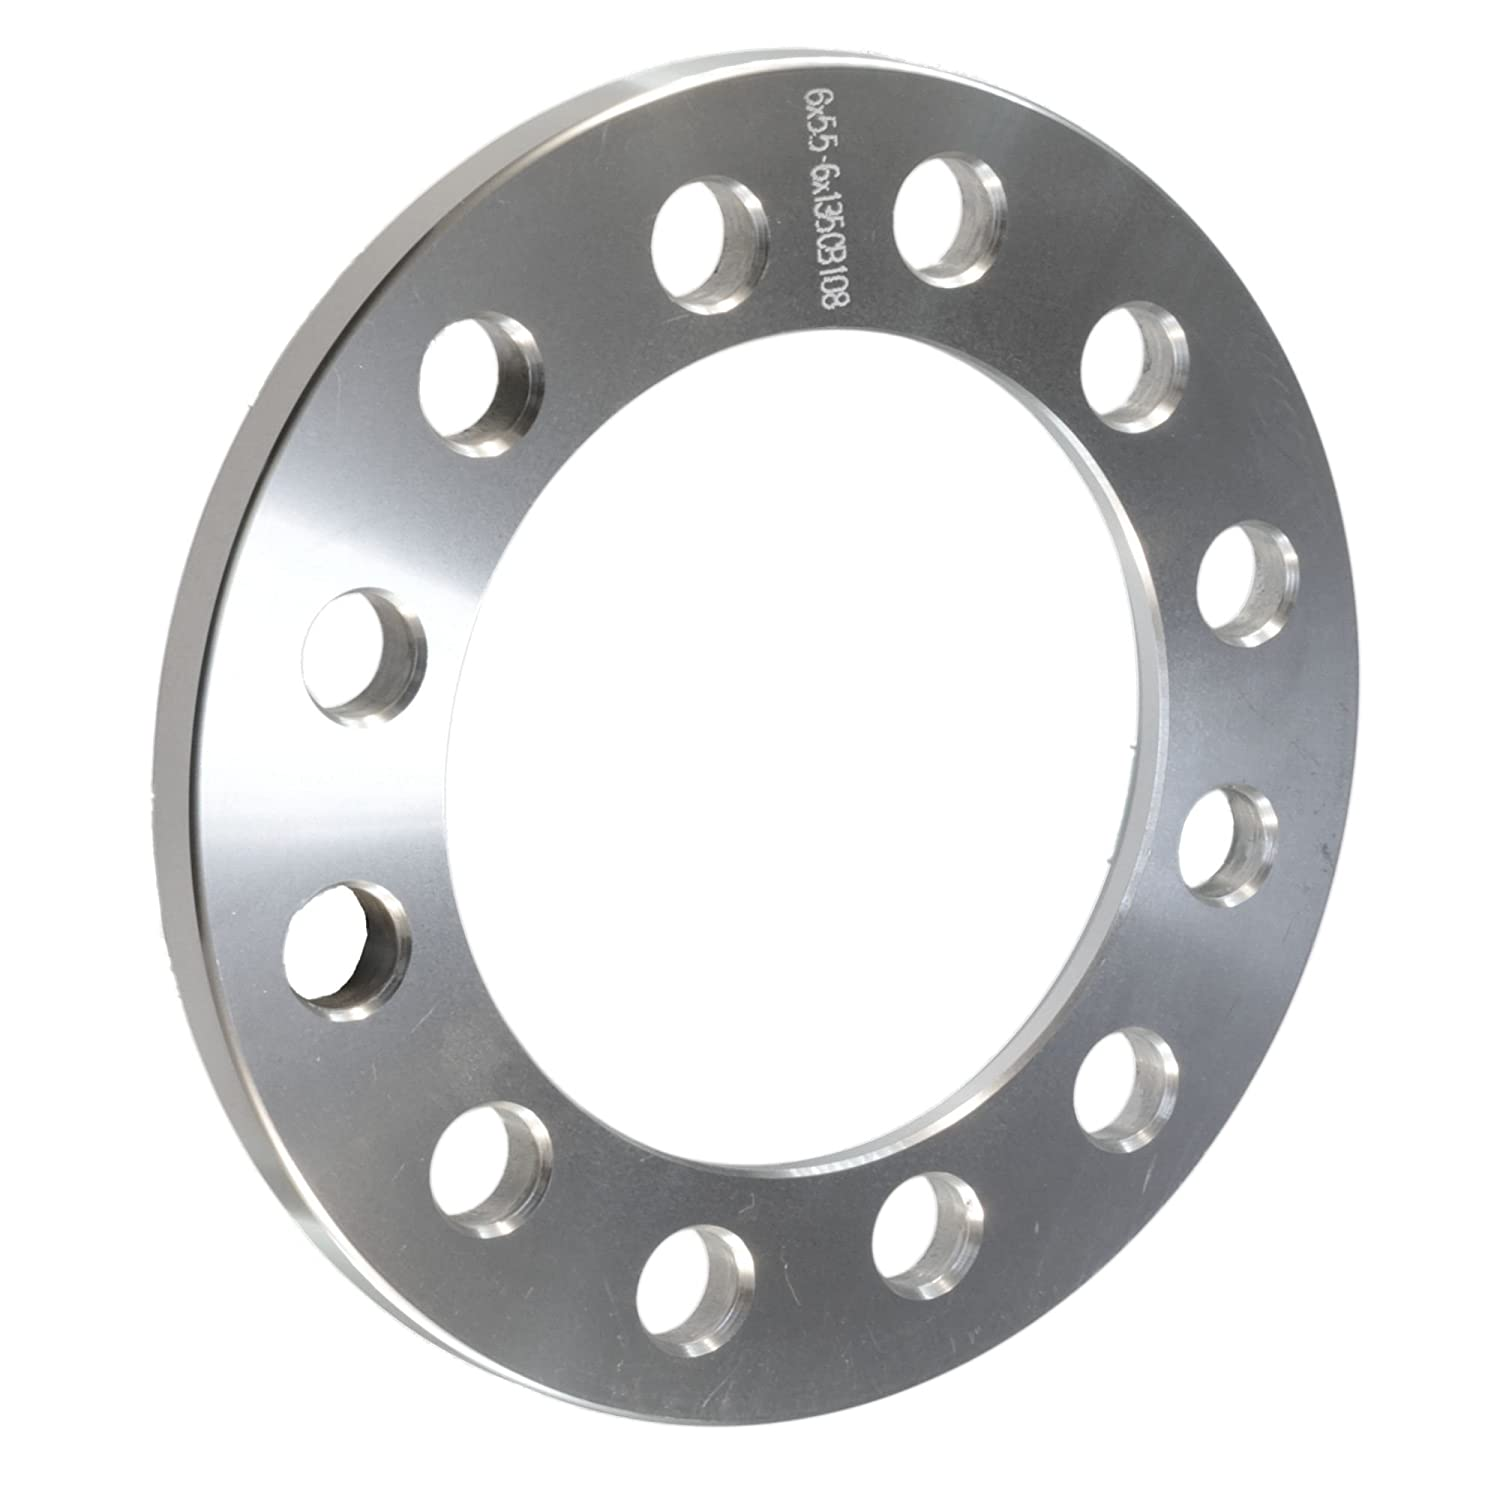 1//4 6x135 Wheel Spacers fits Ford F150 Trucks Expedition Raptor King Ranch .5 2